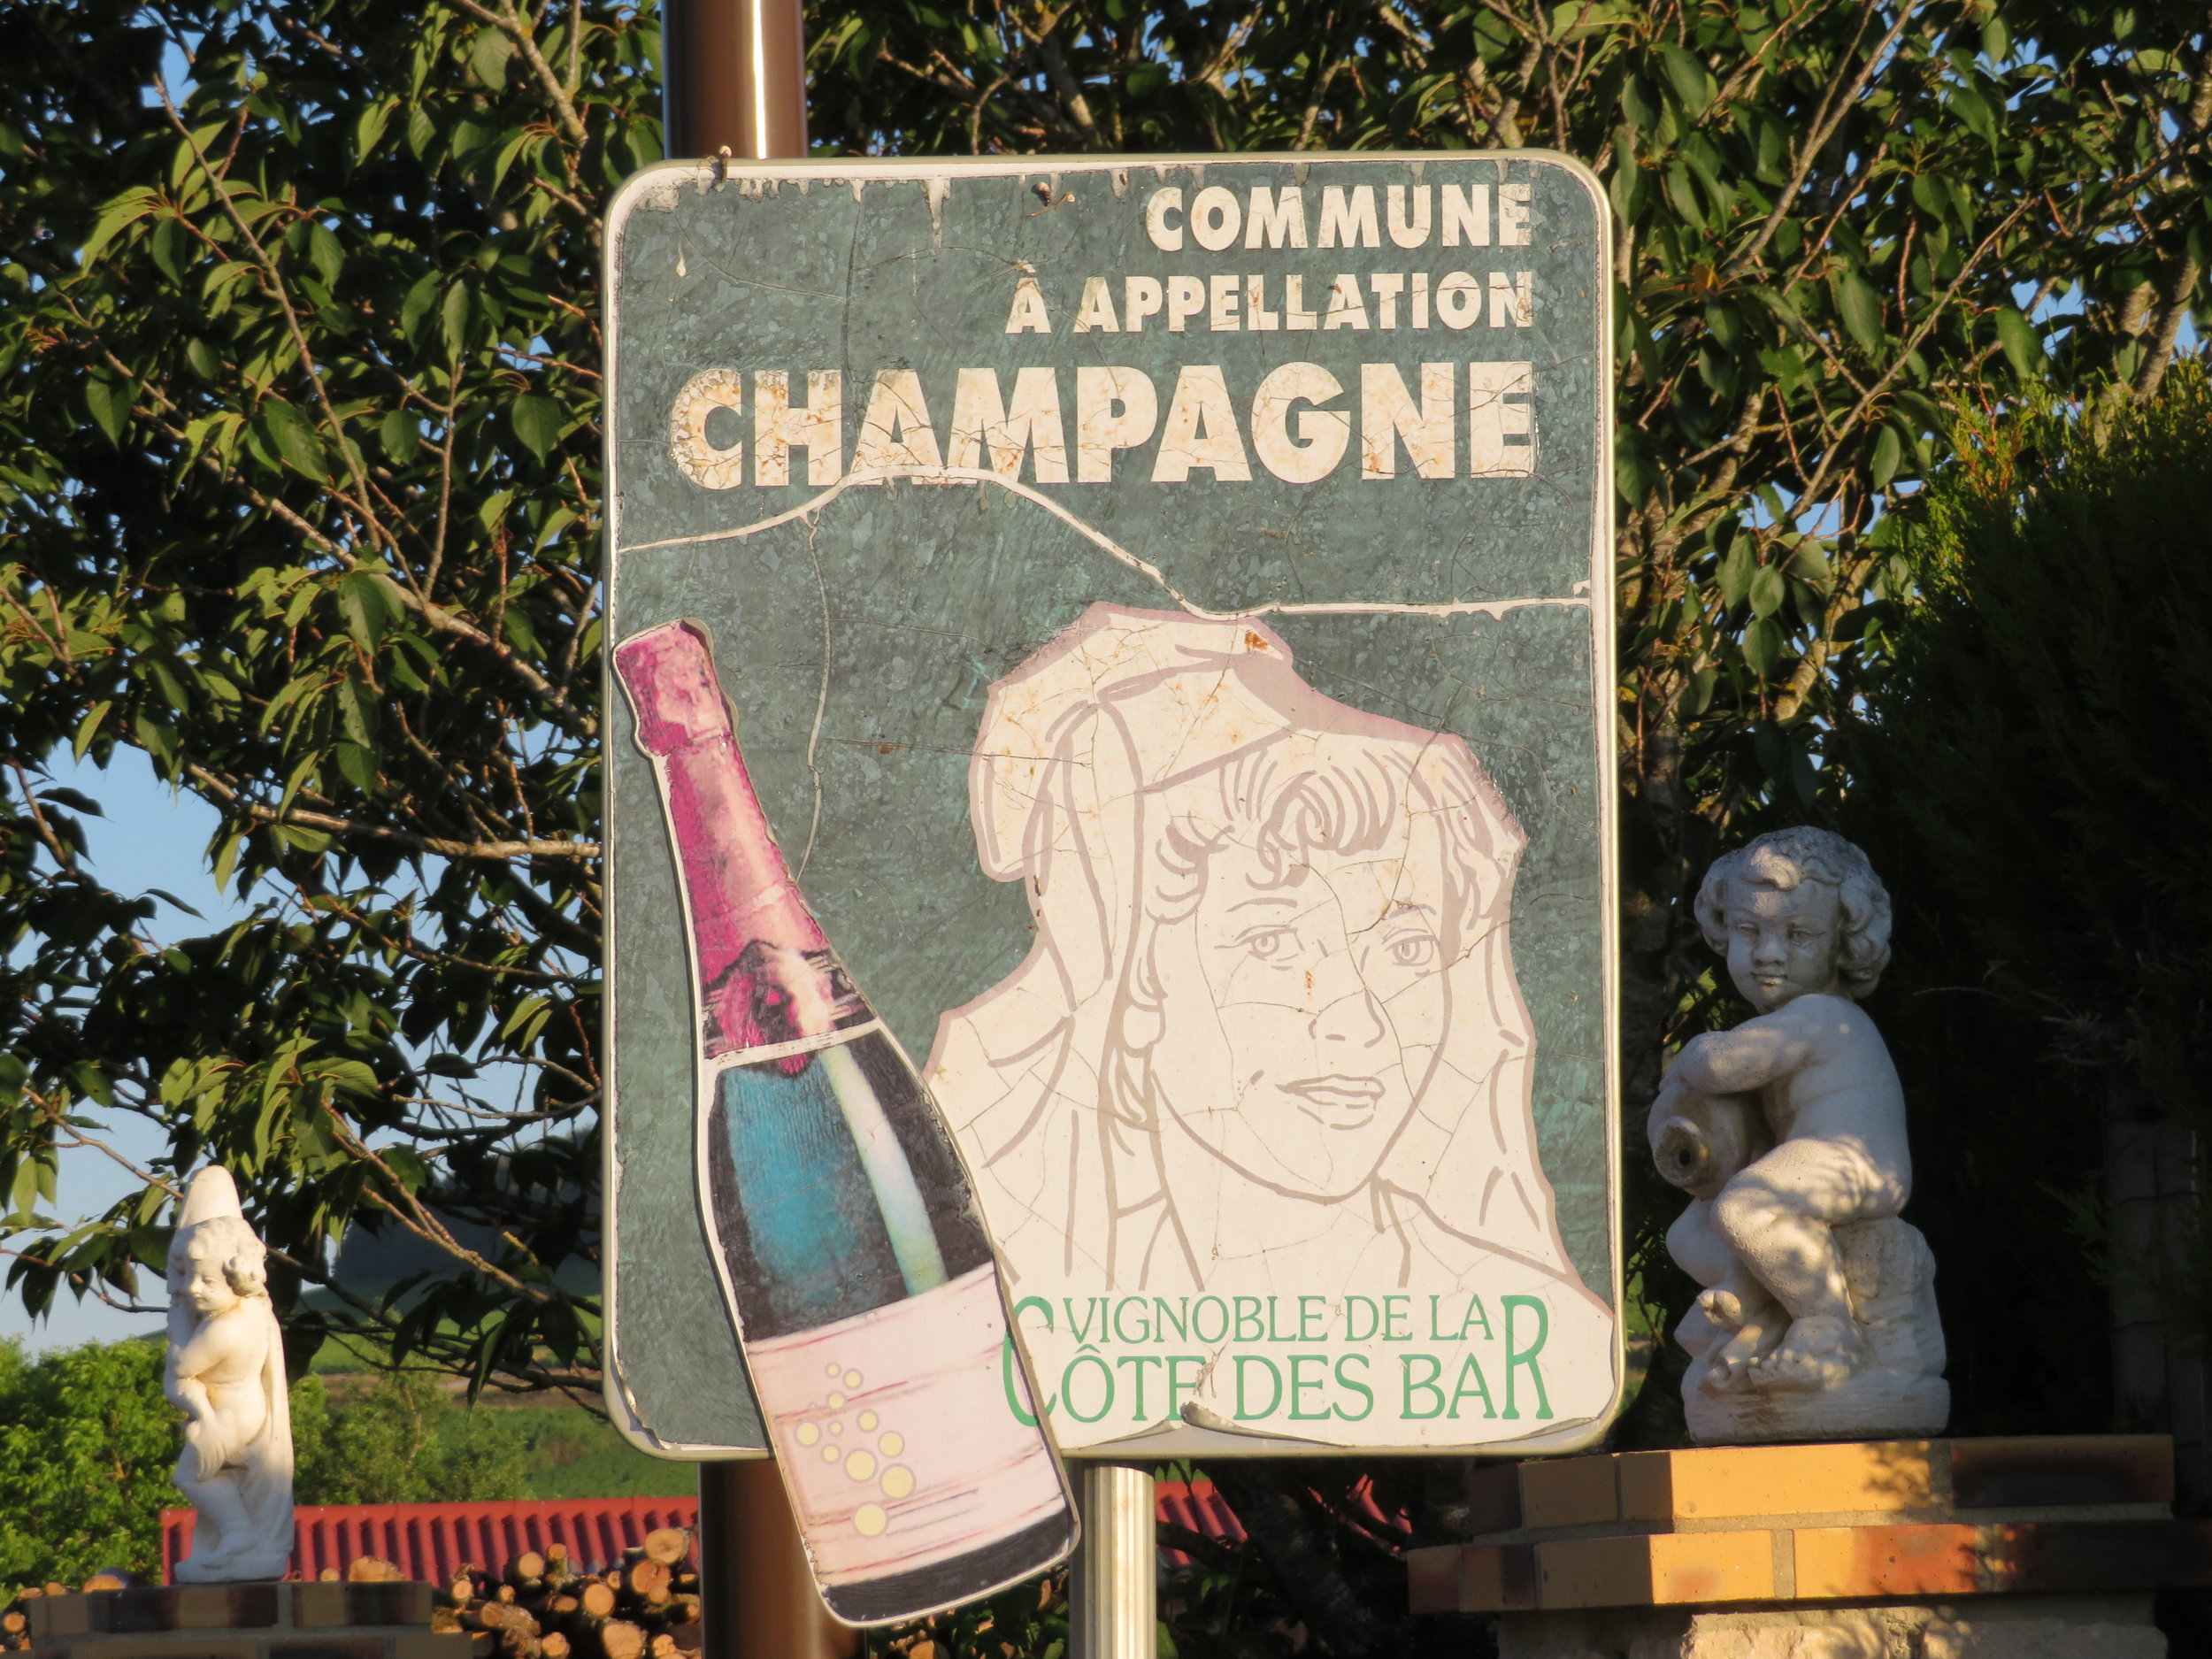 We've walked right into France's Champagne Region